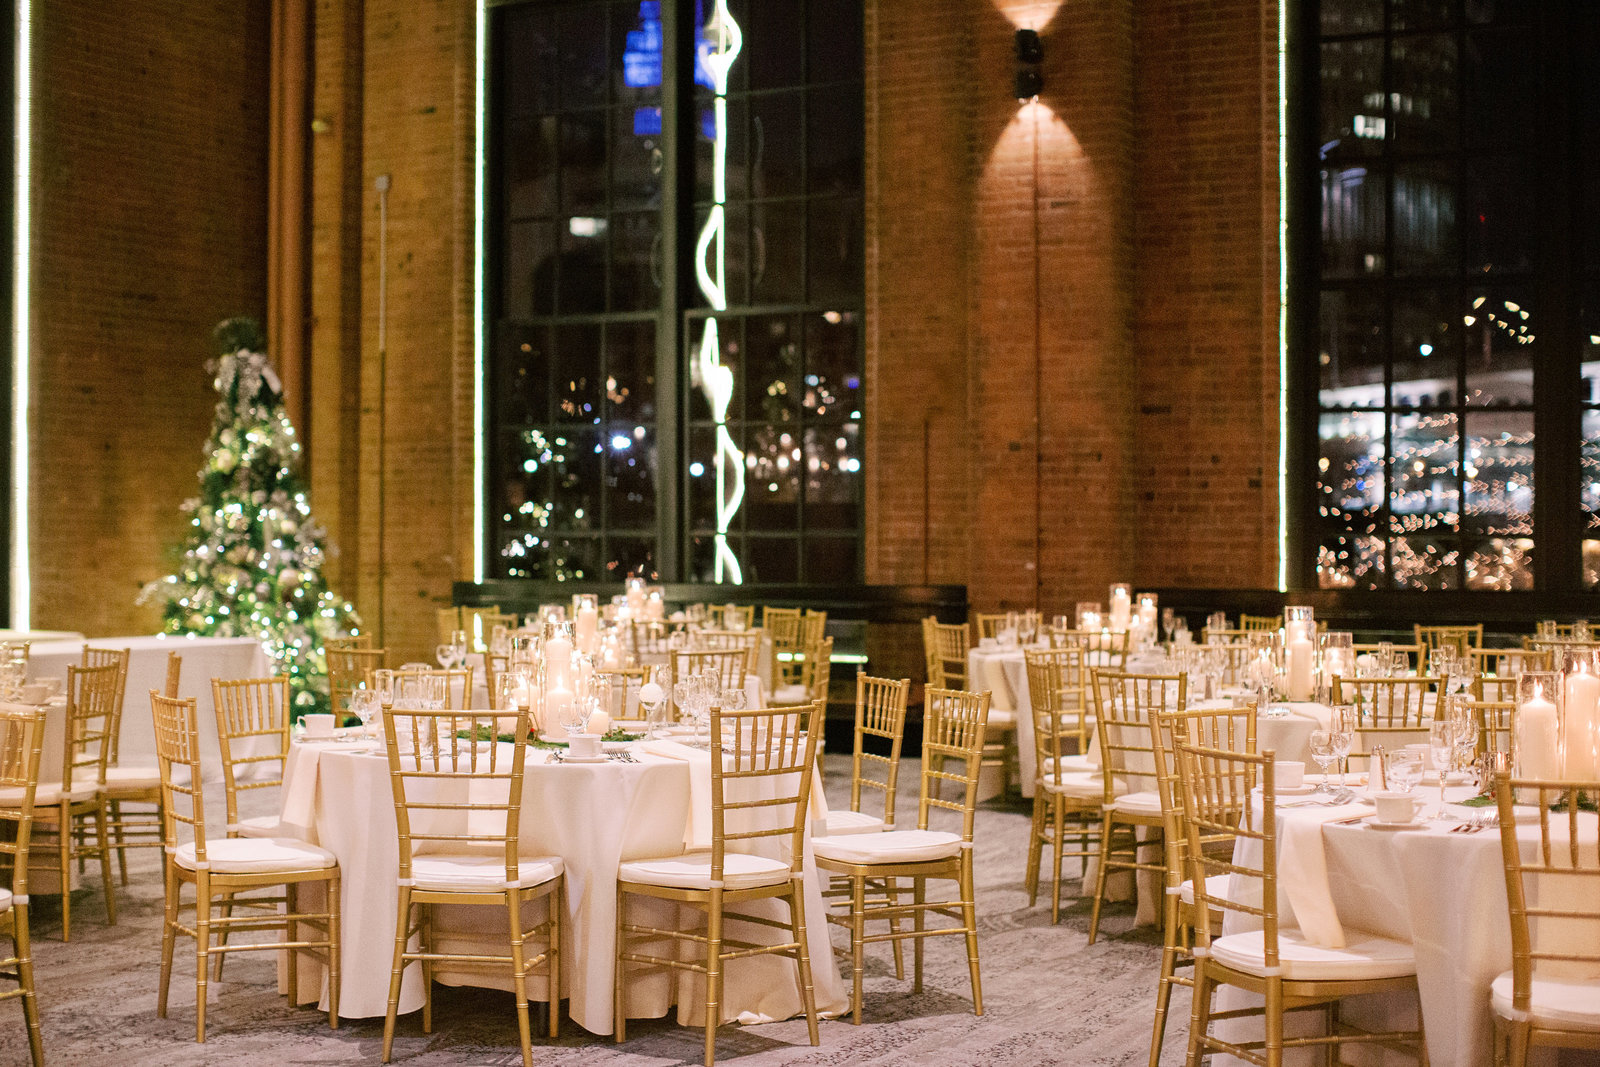 Winter wedding at Windows on the river during the holidays